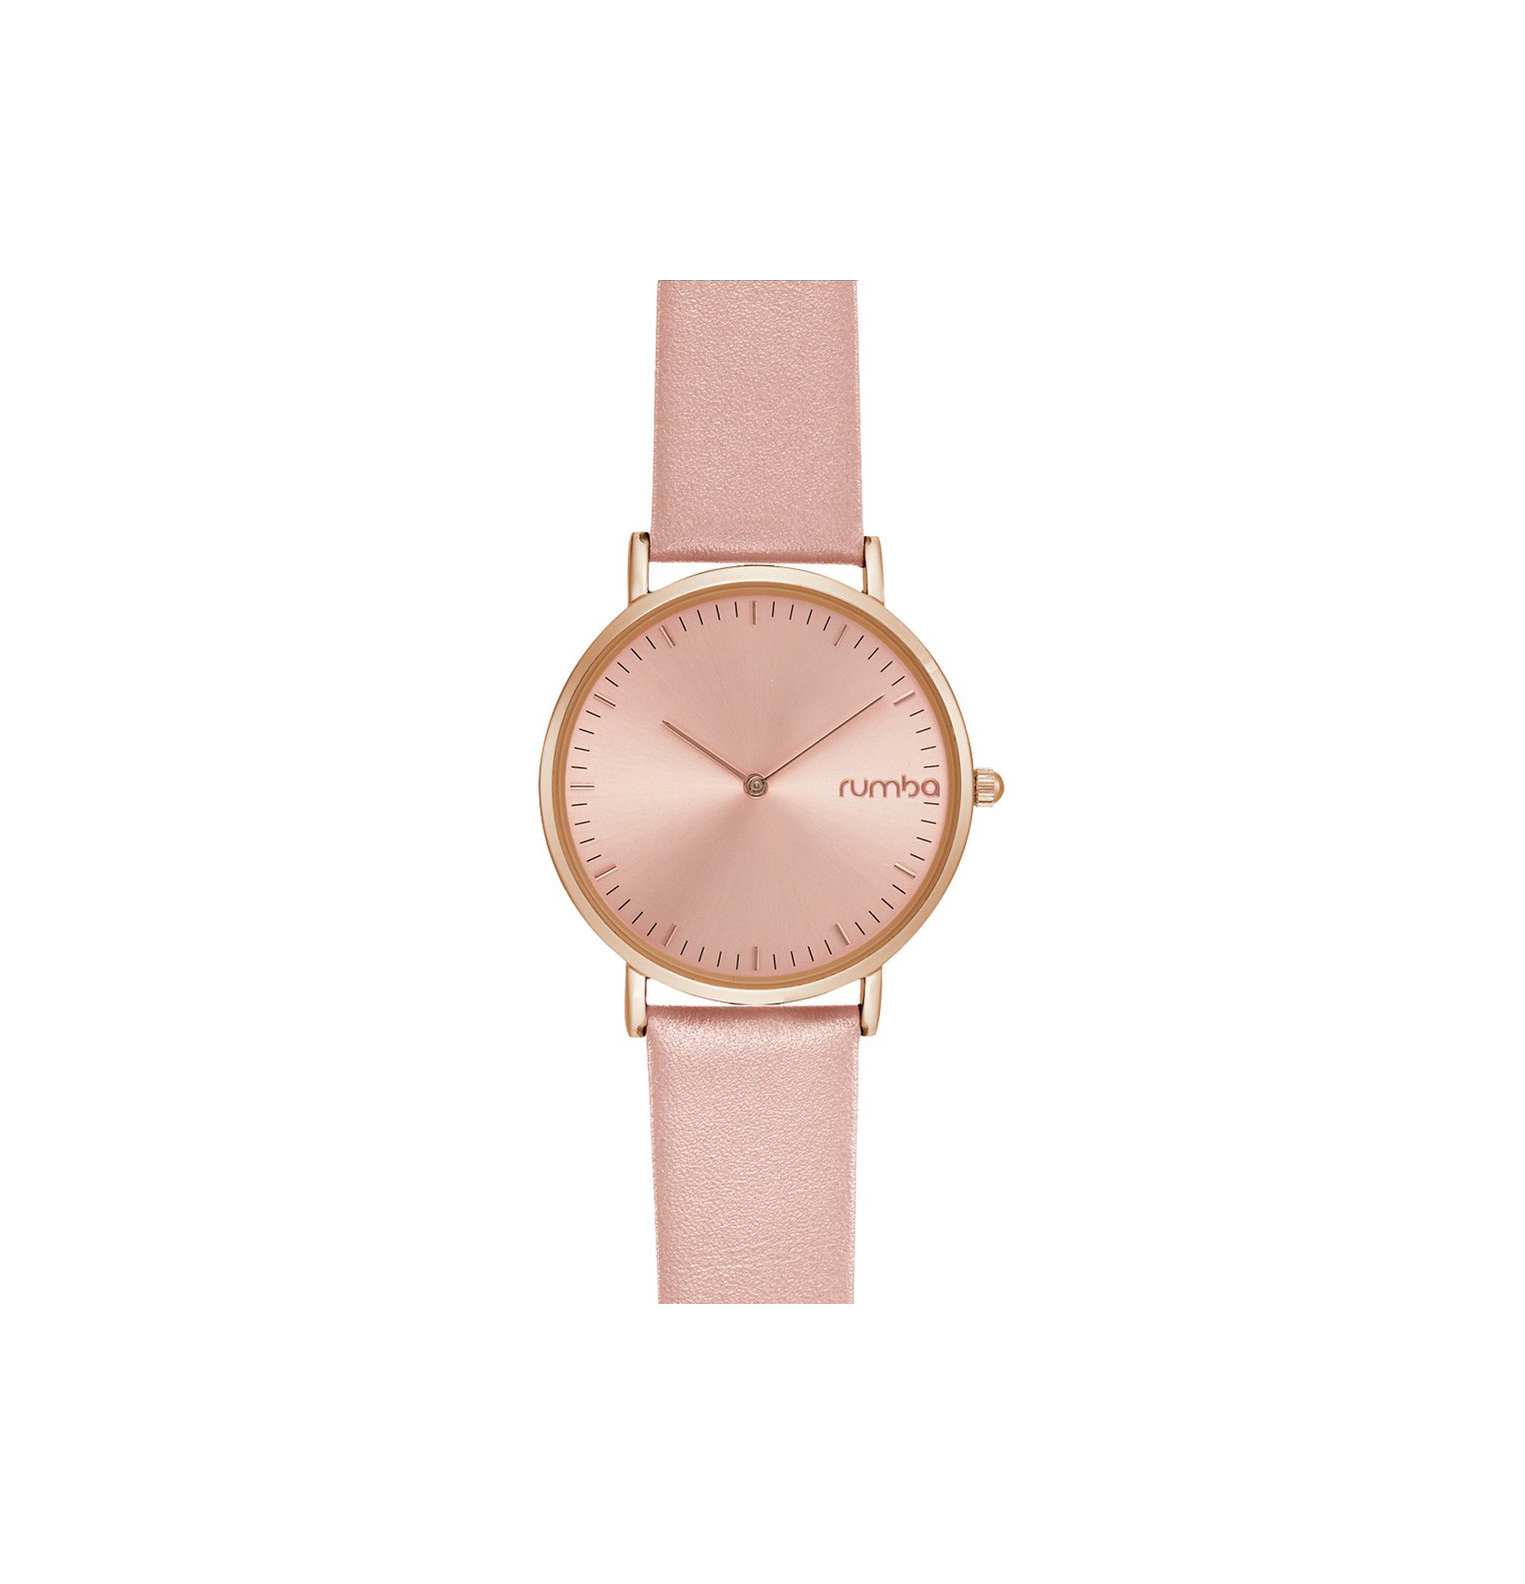 Rumba Blush Watch